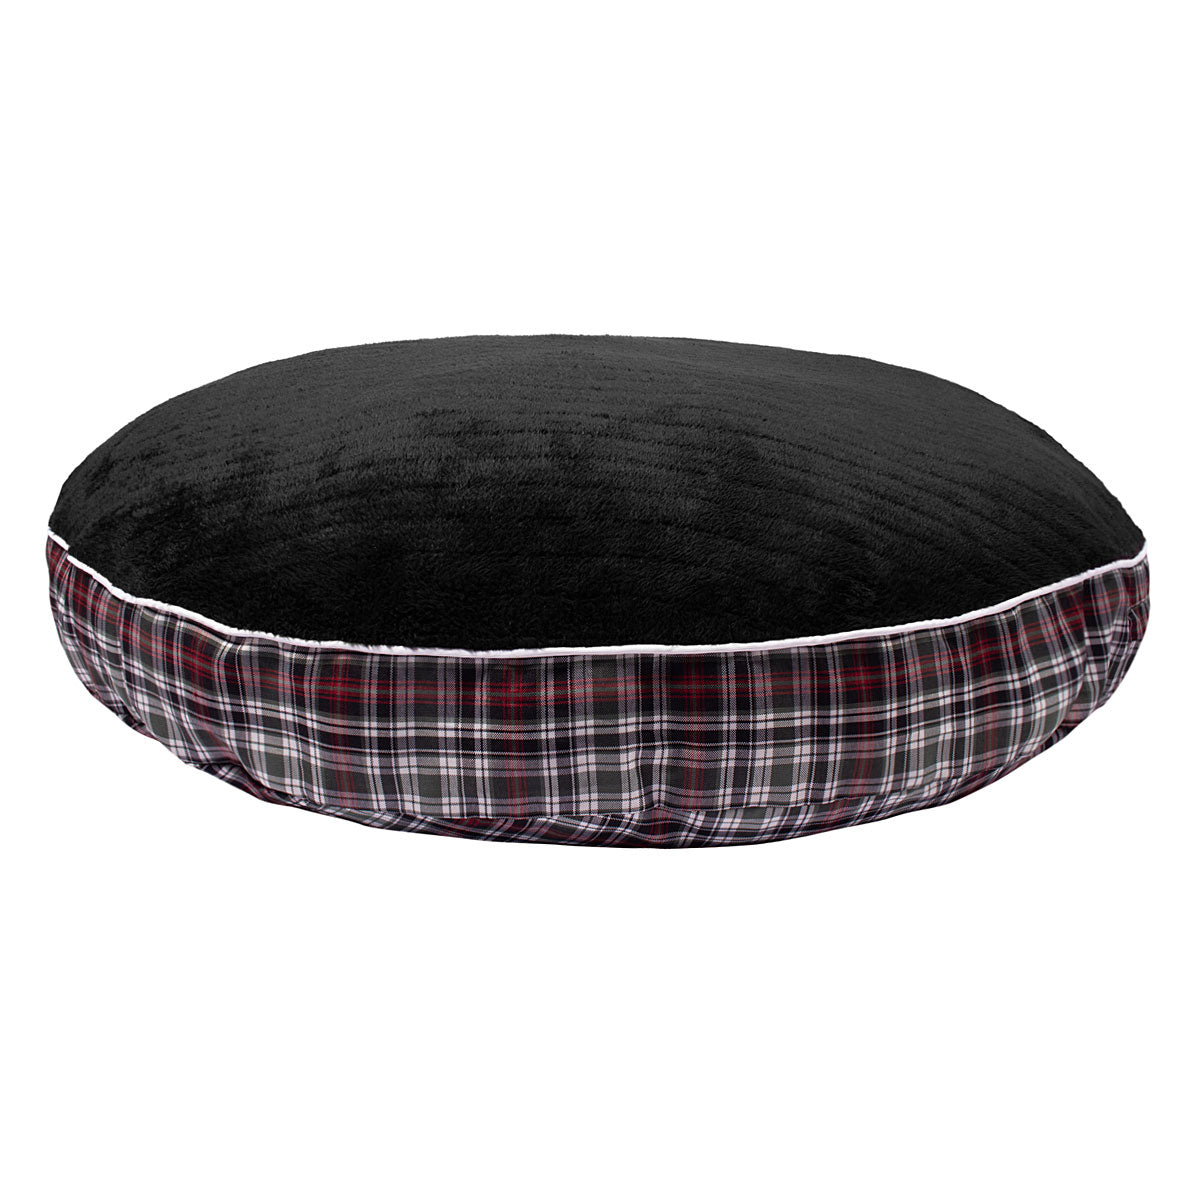 Duck Green Plaid Round Dog Bed - Halo - Breeches.com